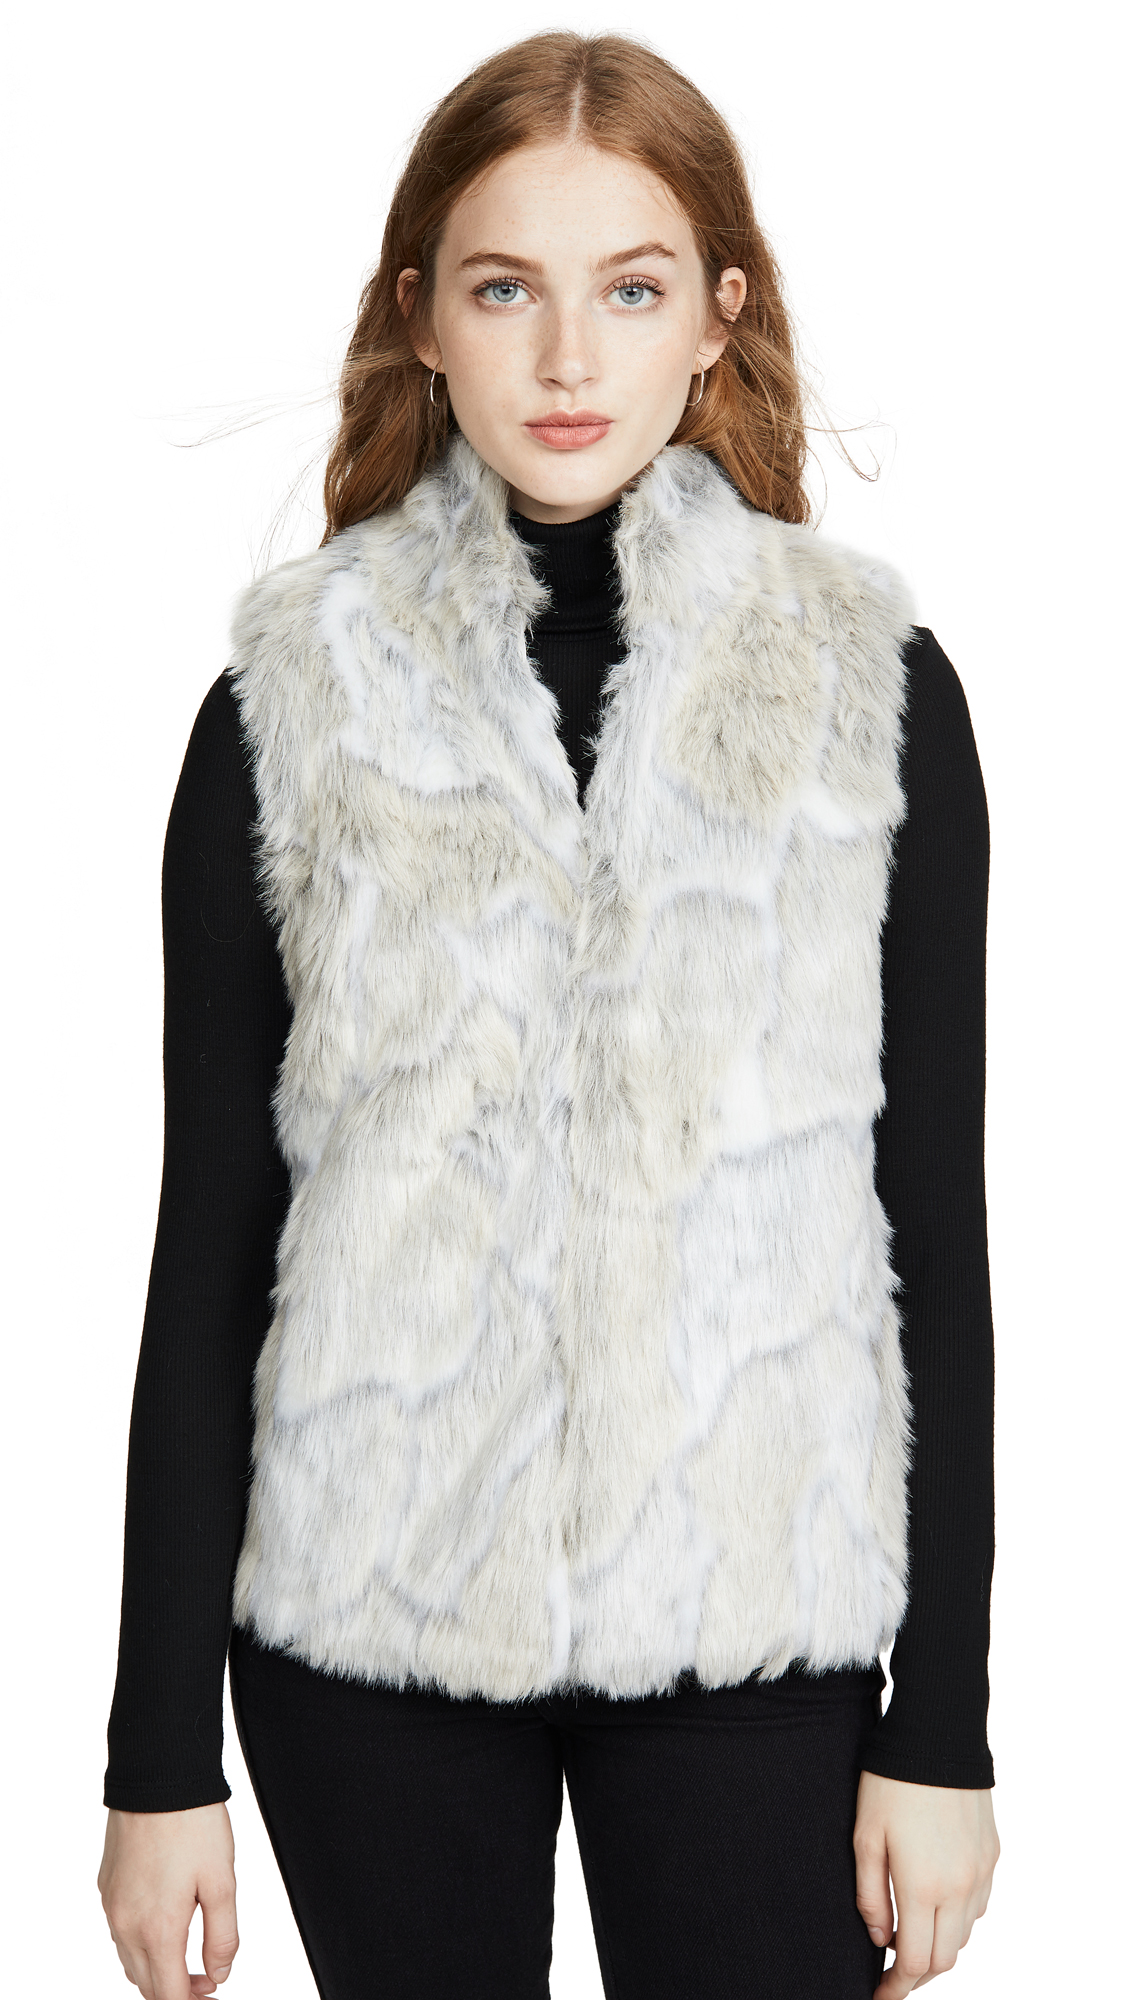 Buy BB Dakota Jack By BB Dakota In A Furry Faux Fur Vest online beautiful BB Dakota Jackets, Coats, Down Jackets